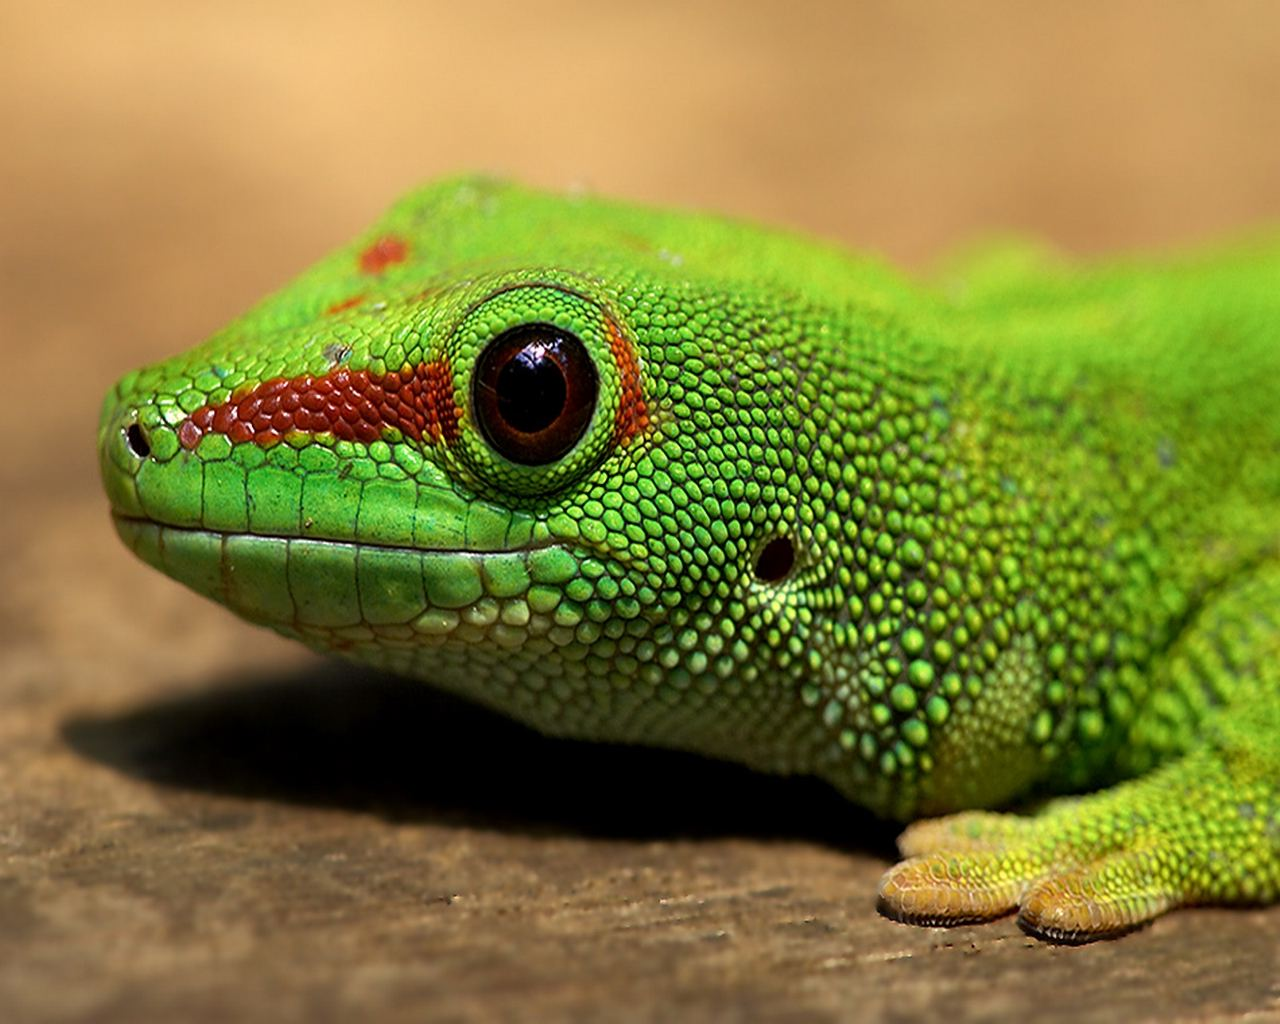 Green Lizard Big Eye 783.34 Kb